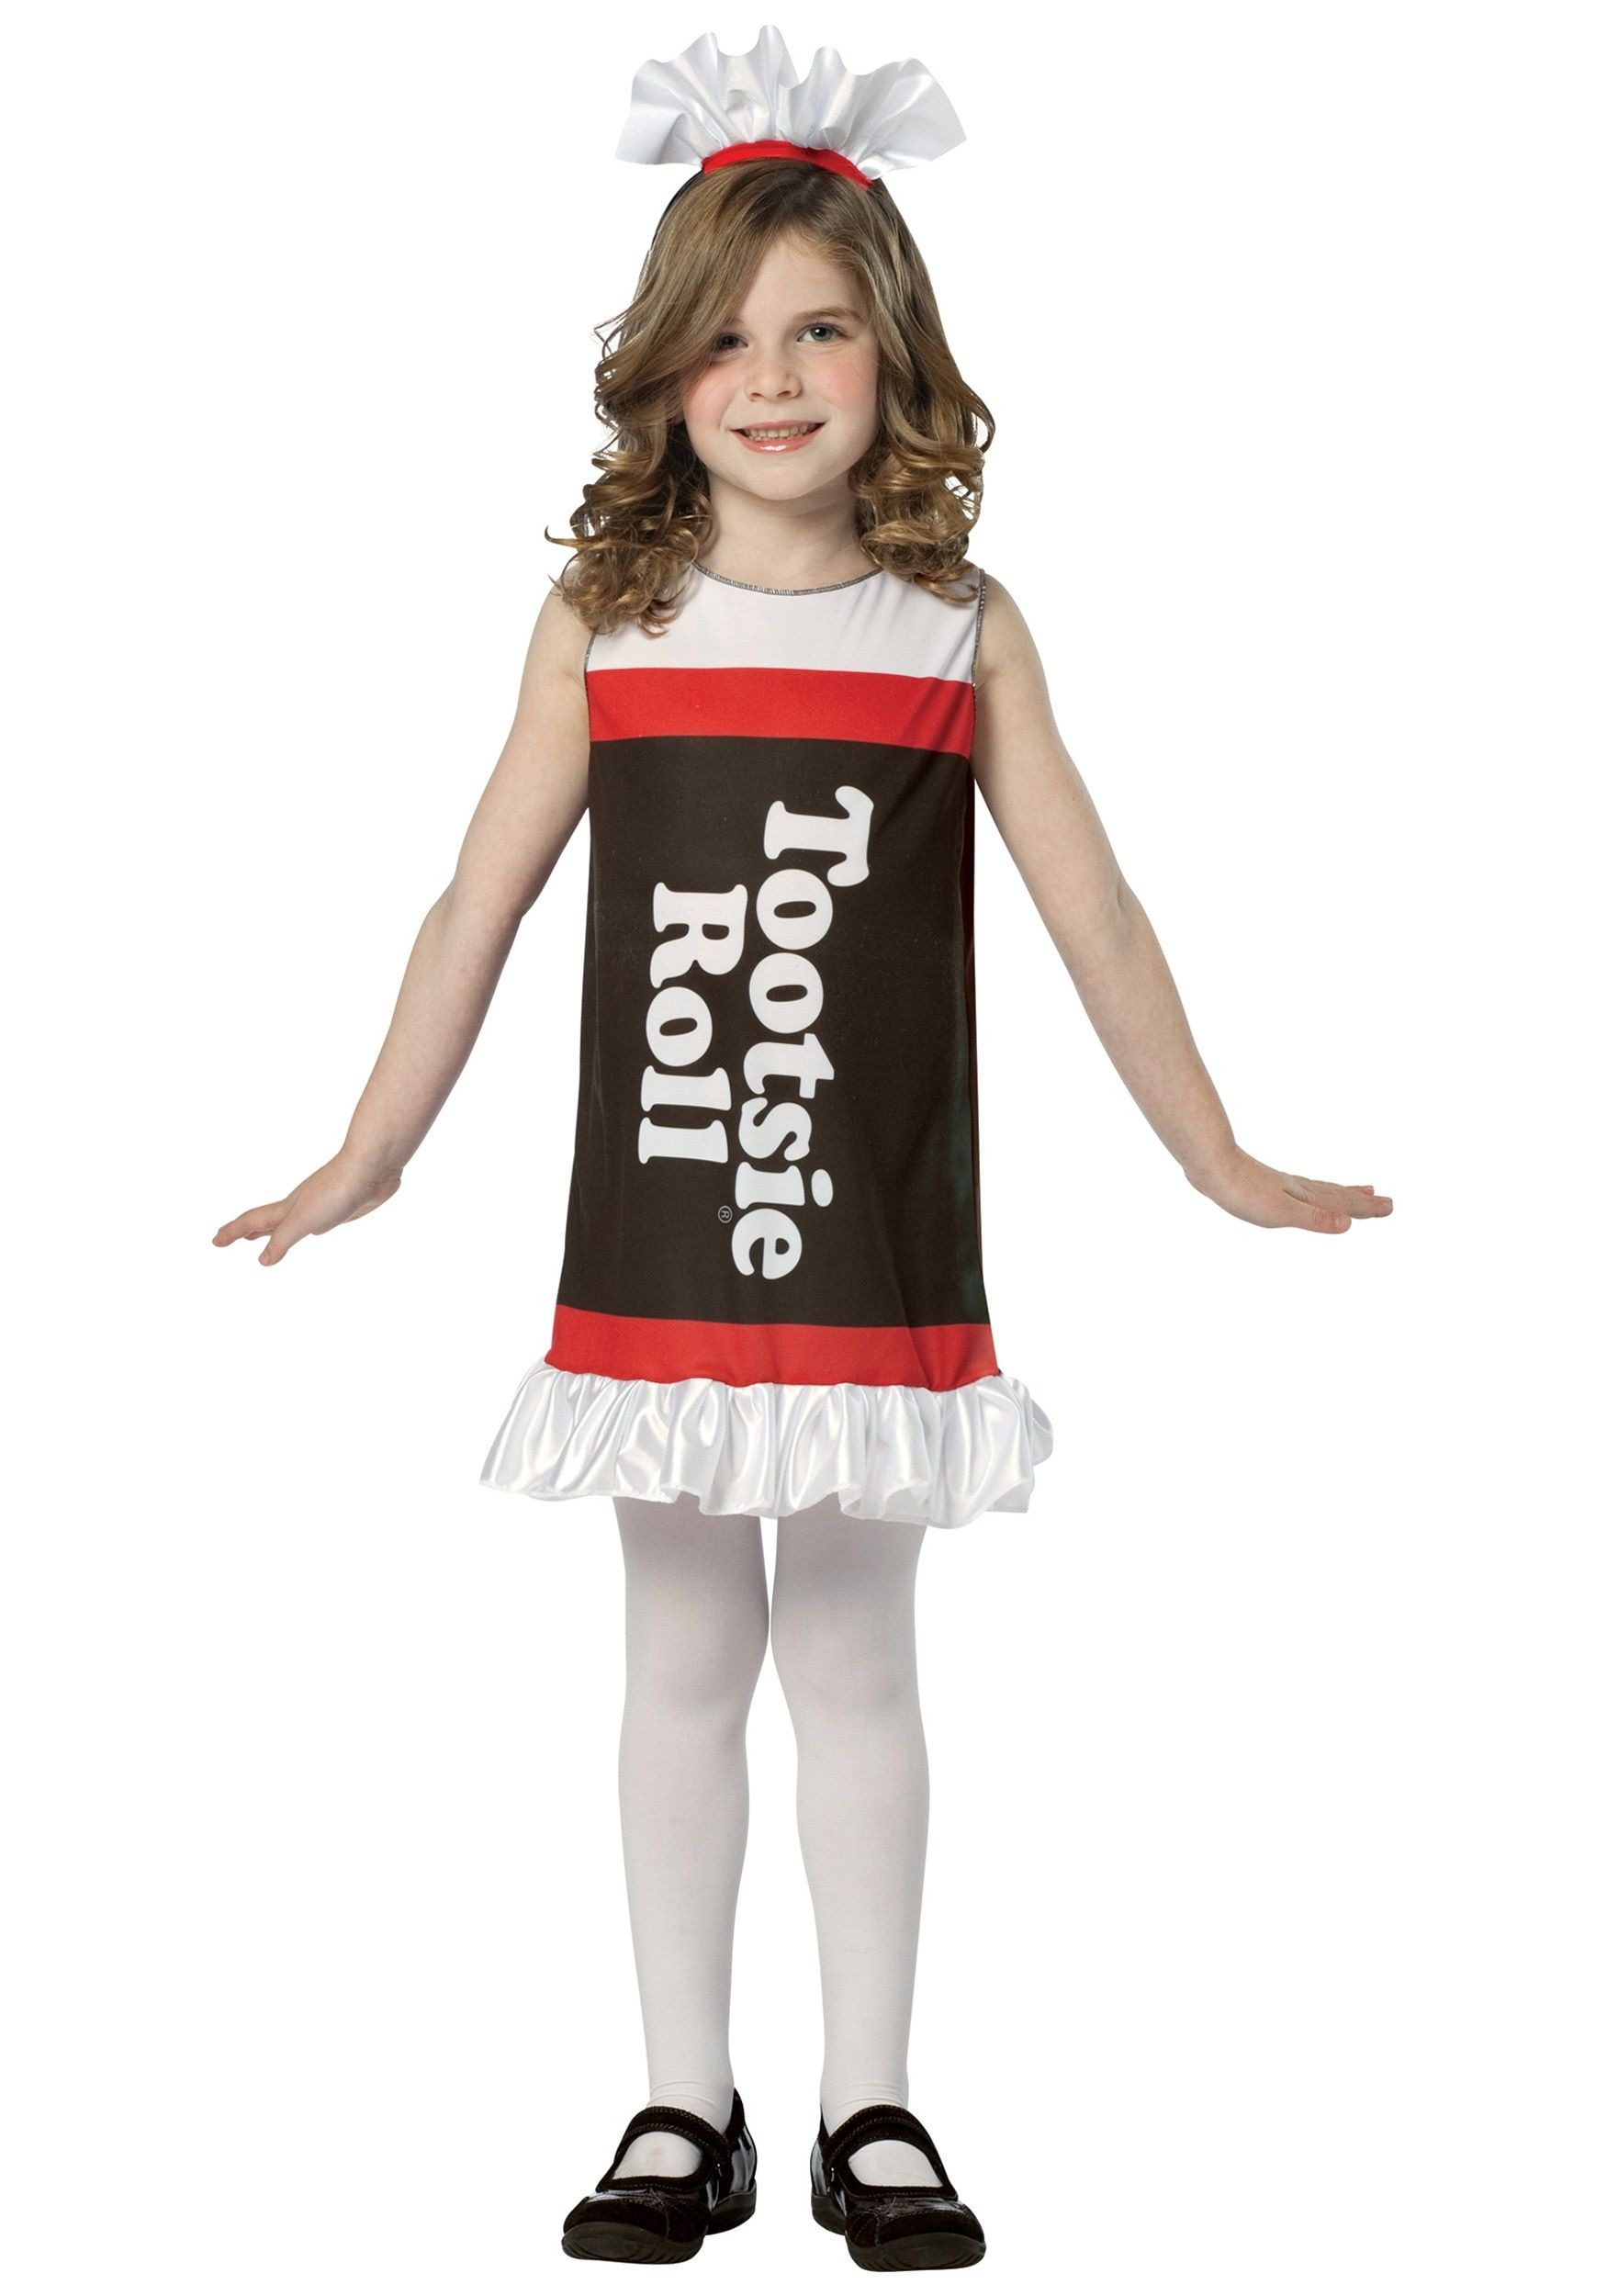 delightful halloween costume ideas for kids with halloween costumes for kids easy homemade halloween costume ideas for kids - Easy Homemade Halloween Costumes Teens